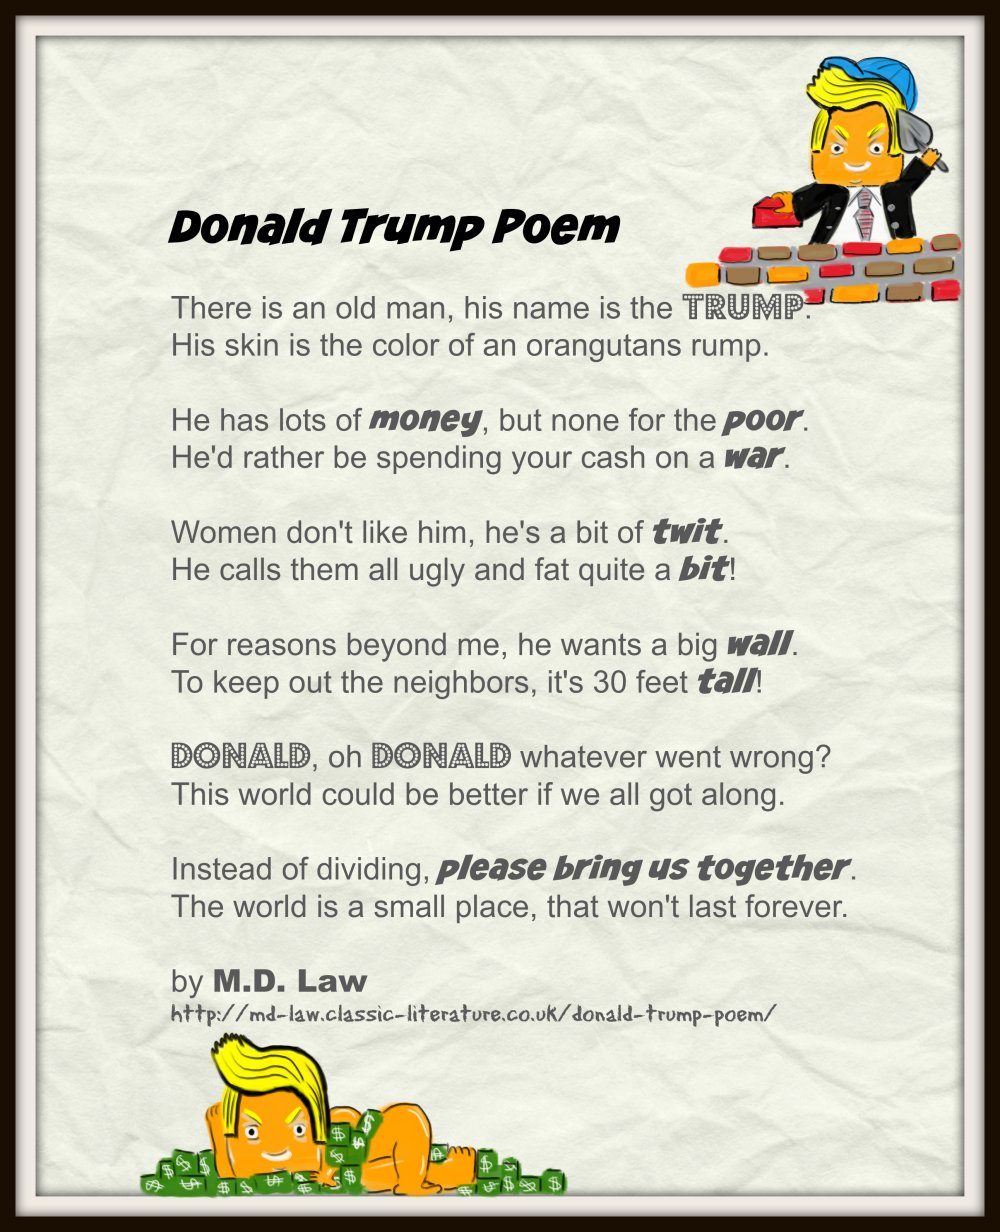 https://md-law.classic-literature.co.uk/wp-content/uploads/donald-trump-poem.jpg